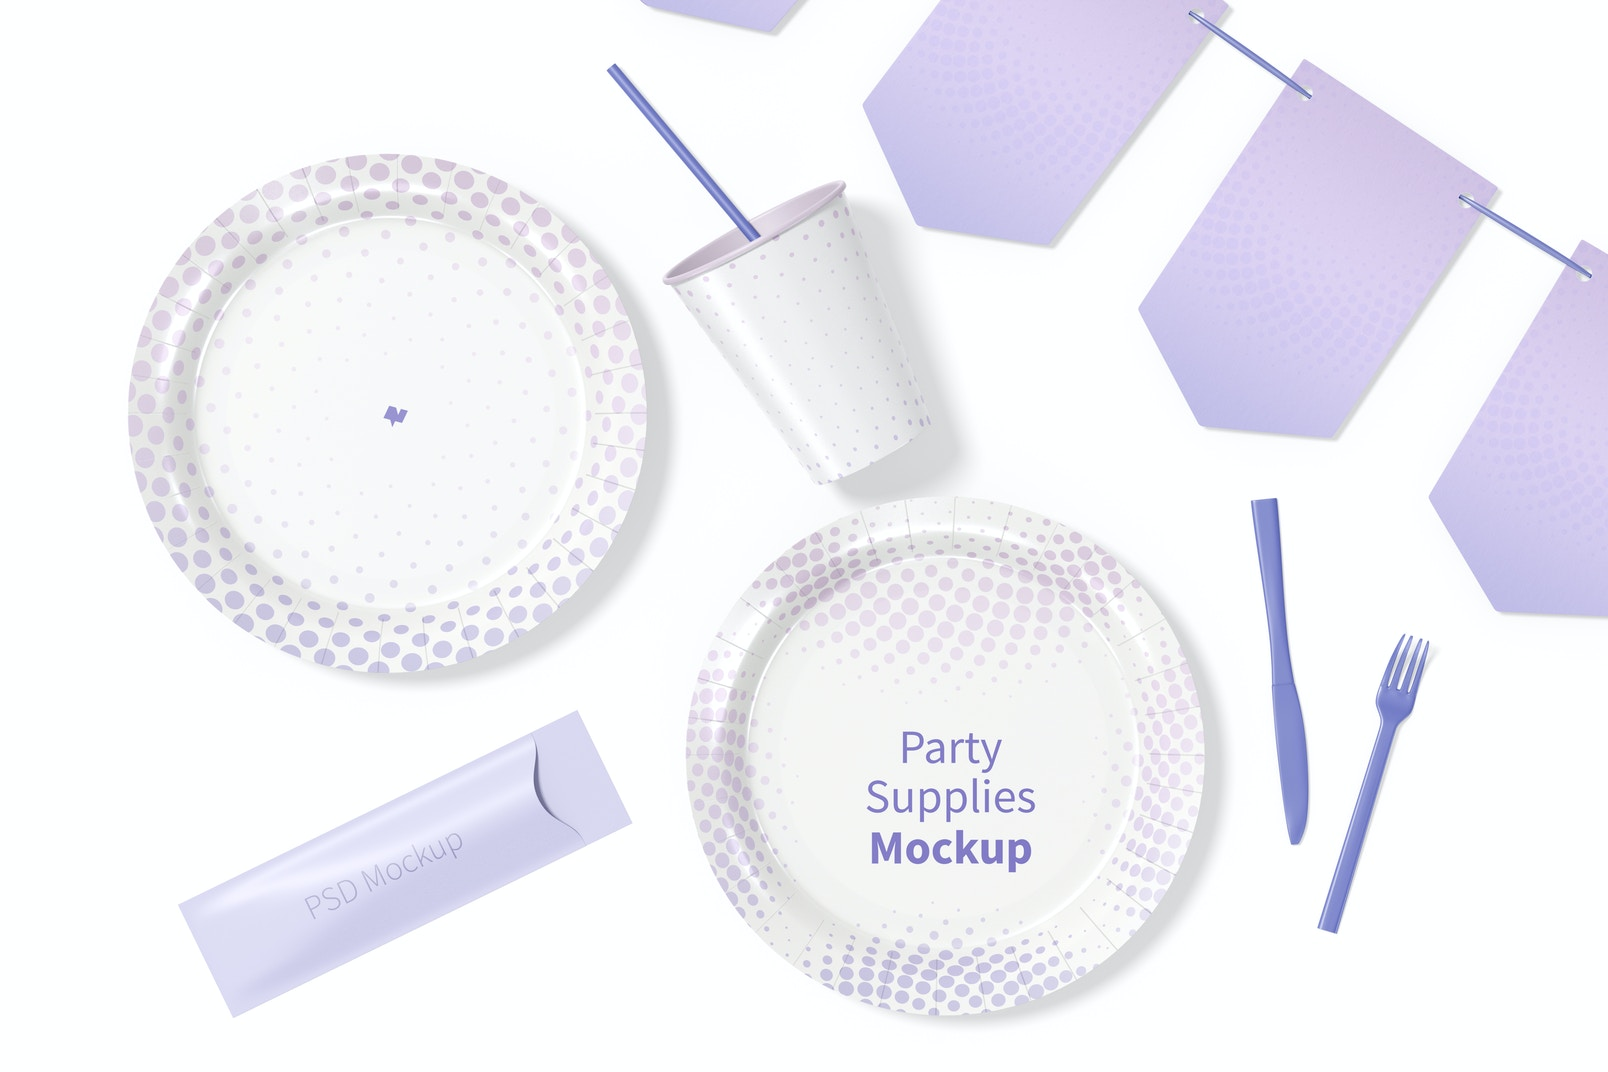 Party Supplies Mockup, Top View